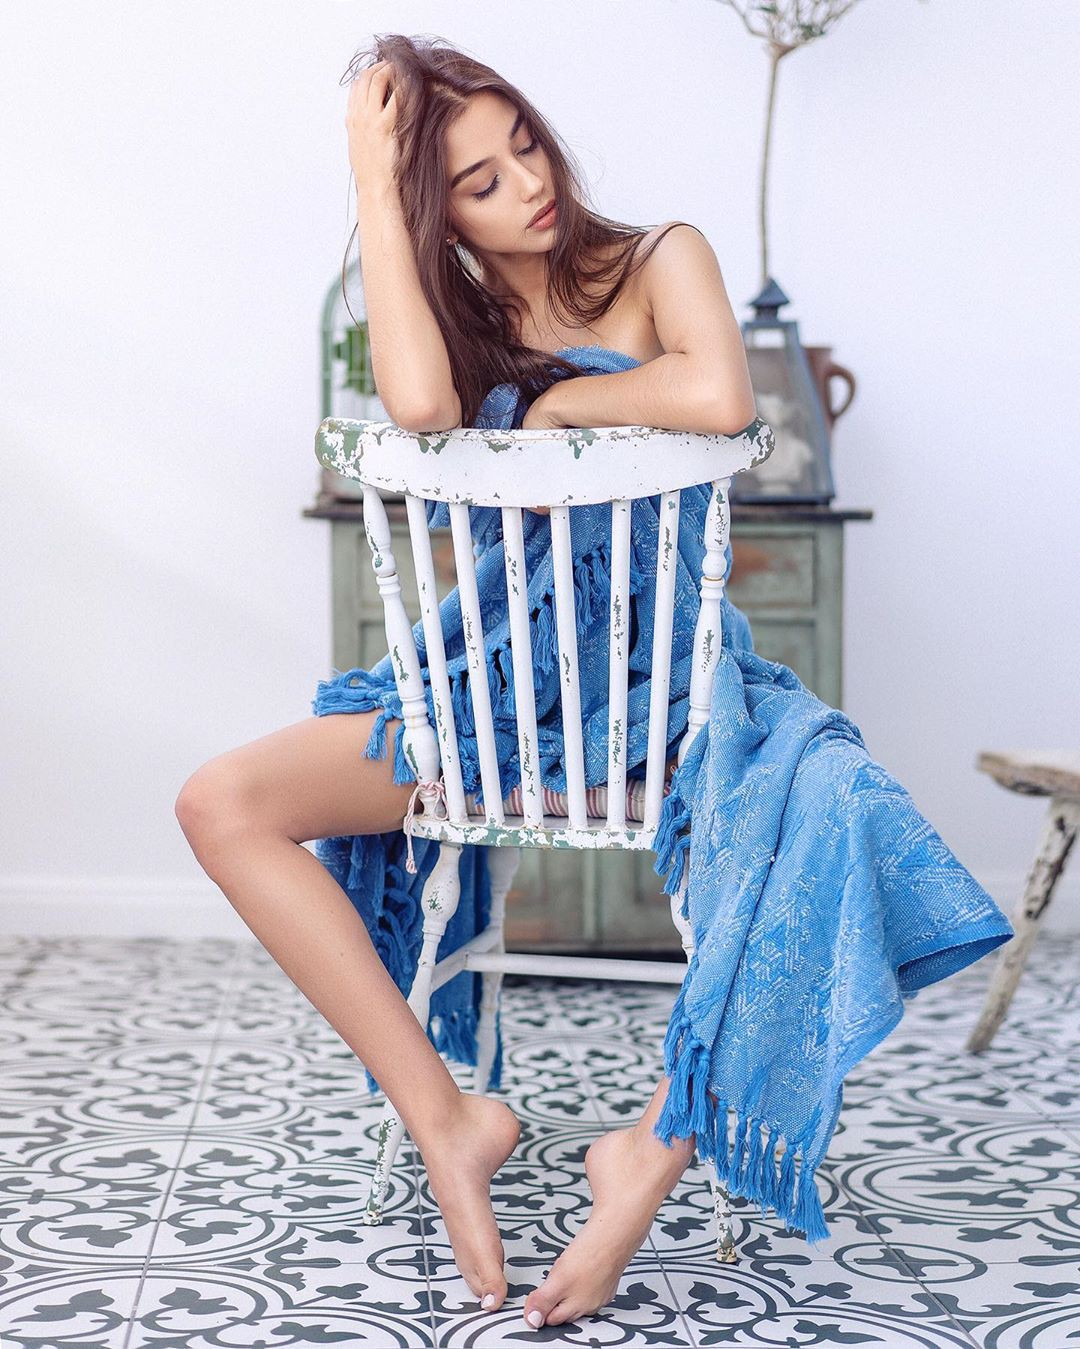 White and blue dress, sexy legs, fashion tips